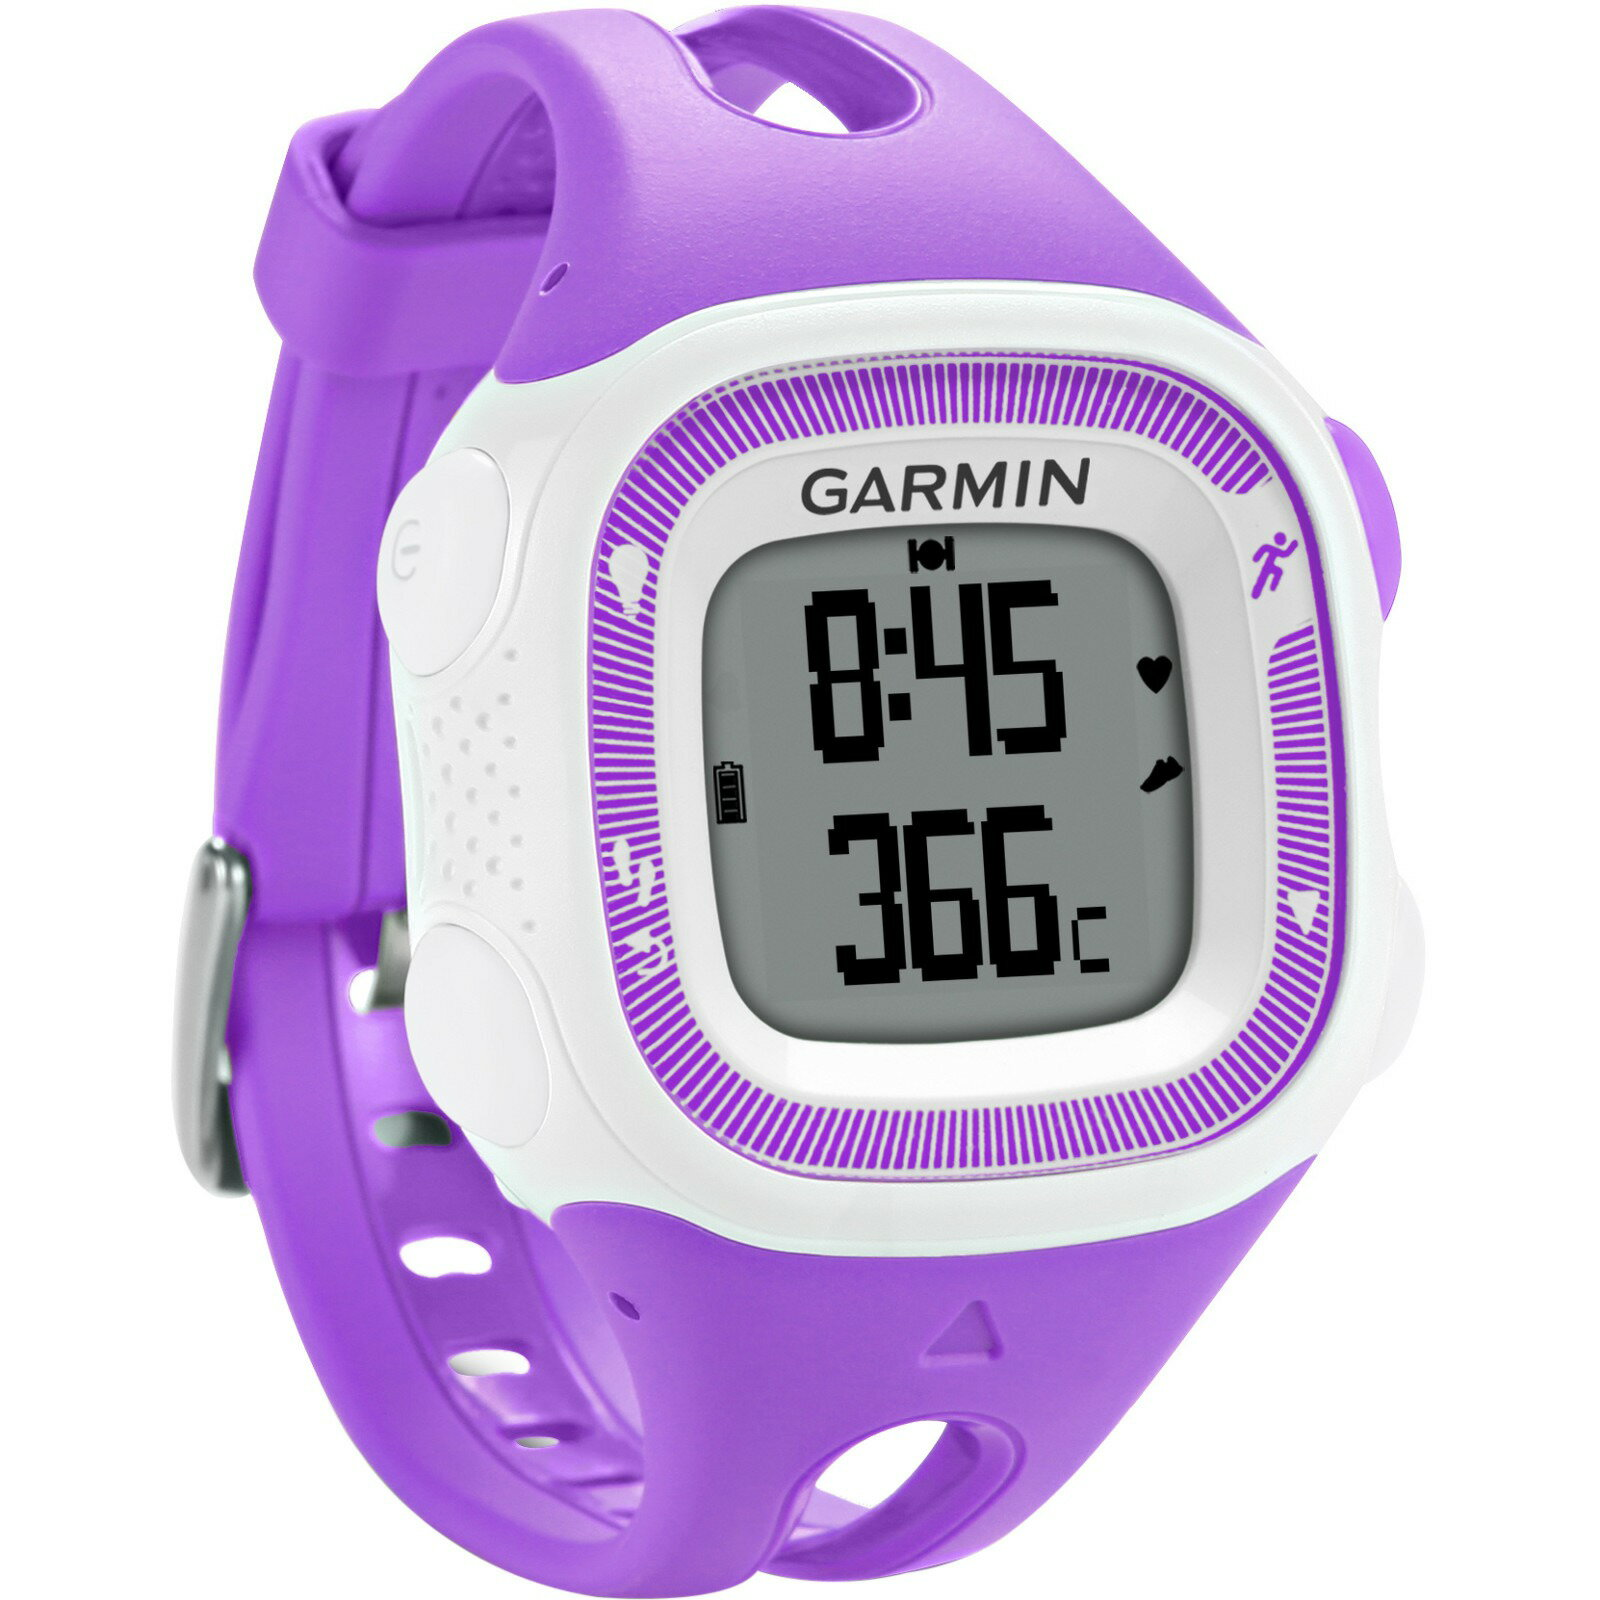 "Garmin Forerunner 15 Wrist Watch - 1.58"" - 2.05"" - Running, Cycling, Training 2"